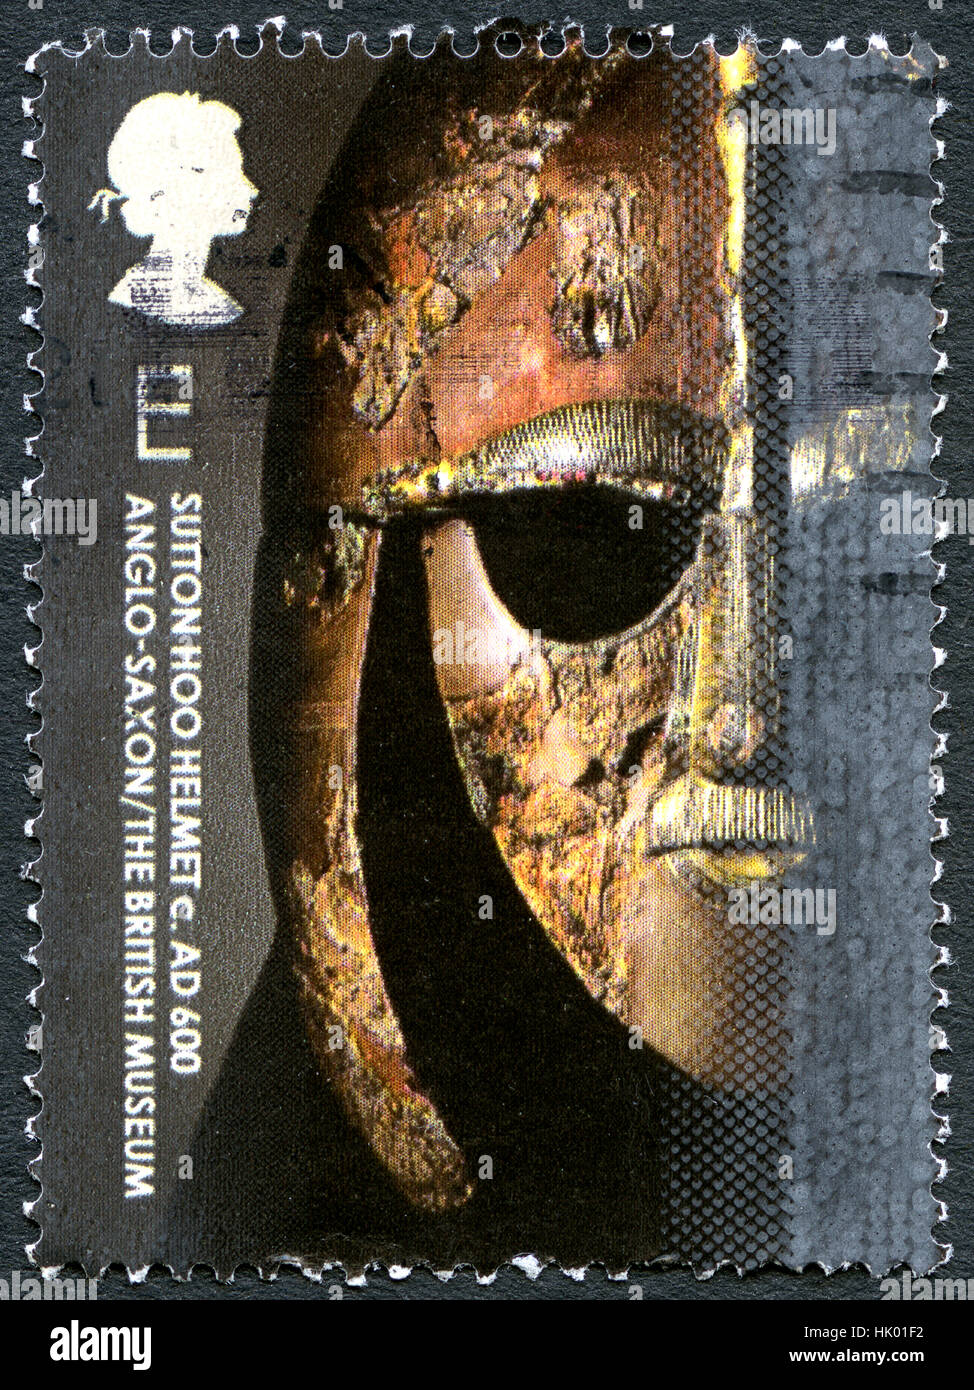 GREAT BRITAIN - CIRCA 2003: A used postage stamp from the UK, depicting an image of a Sutton Hoo Helmet exhibited - Stock Image